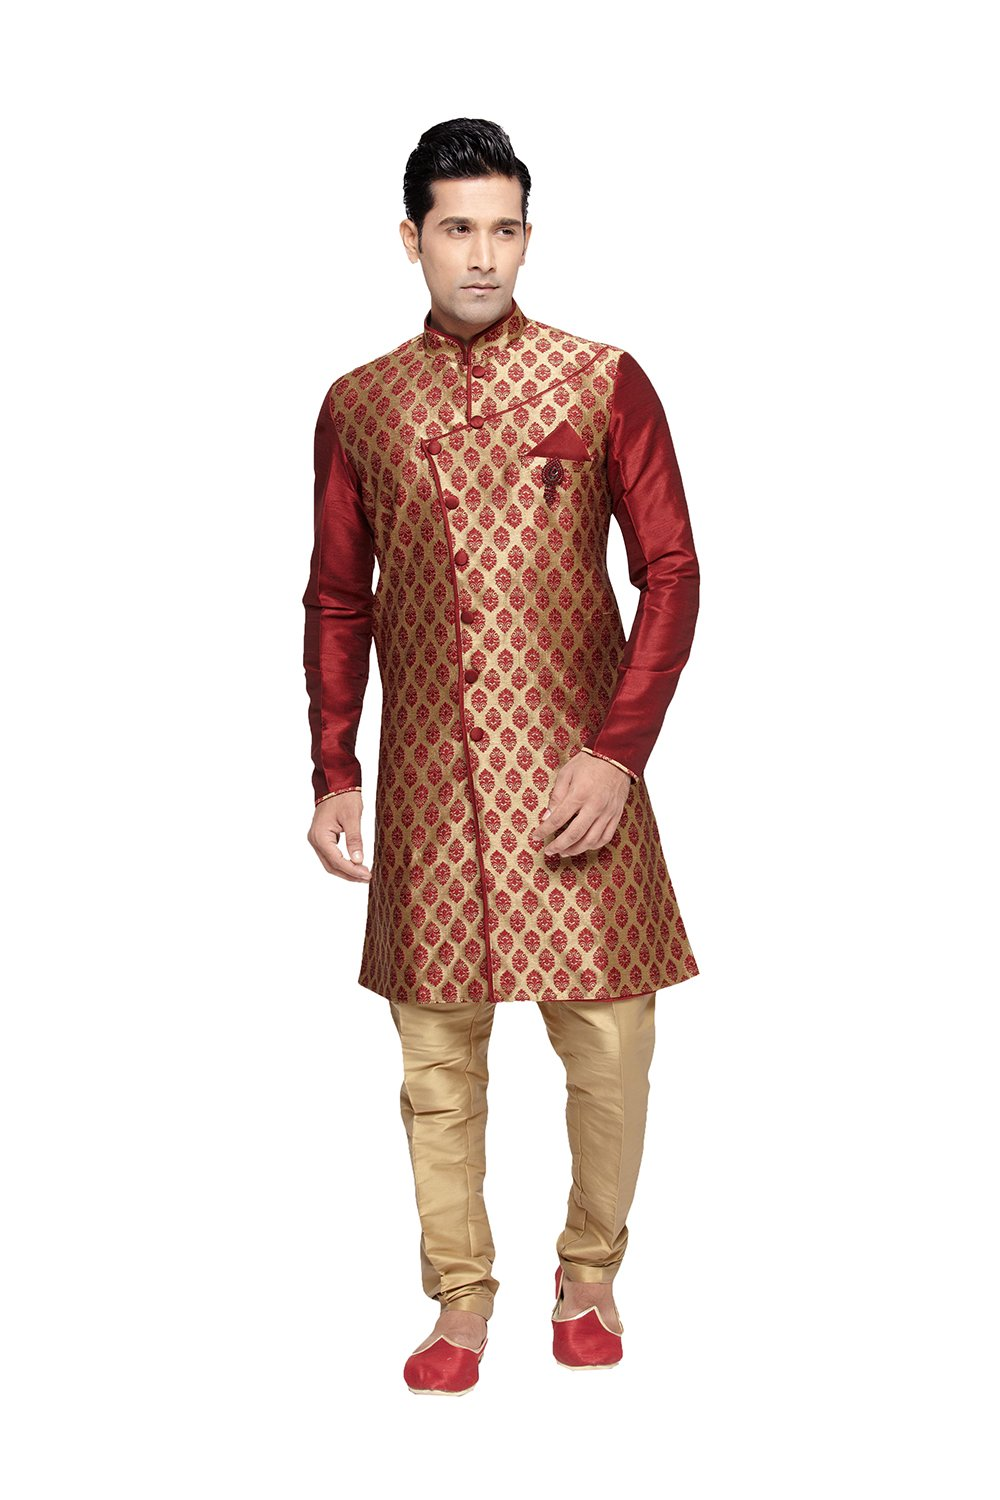 Indian Kurta Pajama Set For Men Wedding Festival Partywear In Beige Brocade Art Silk